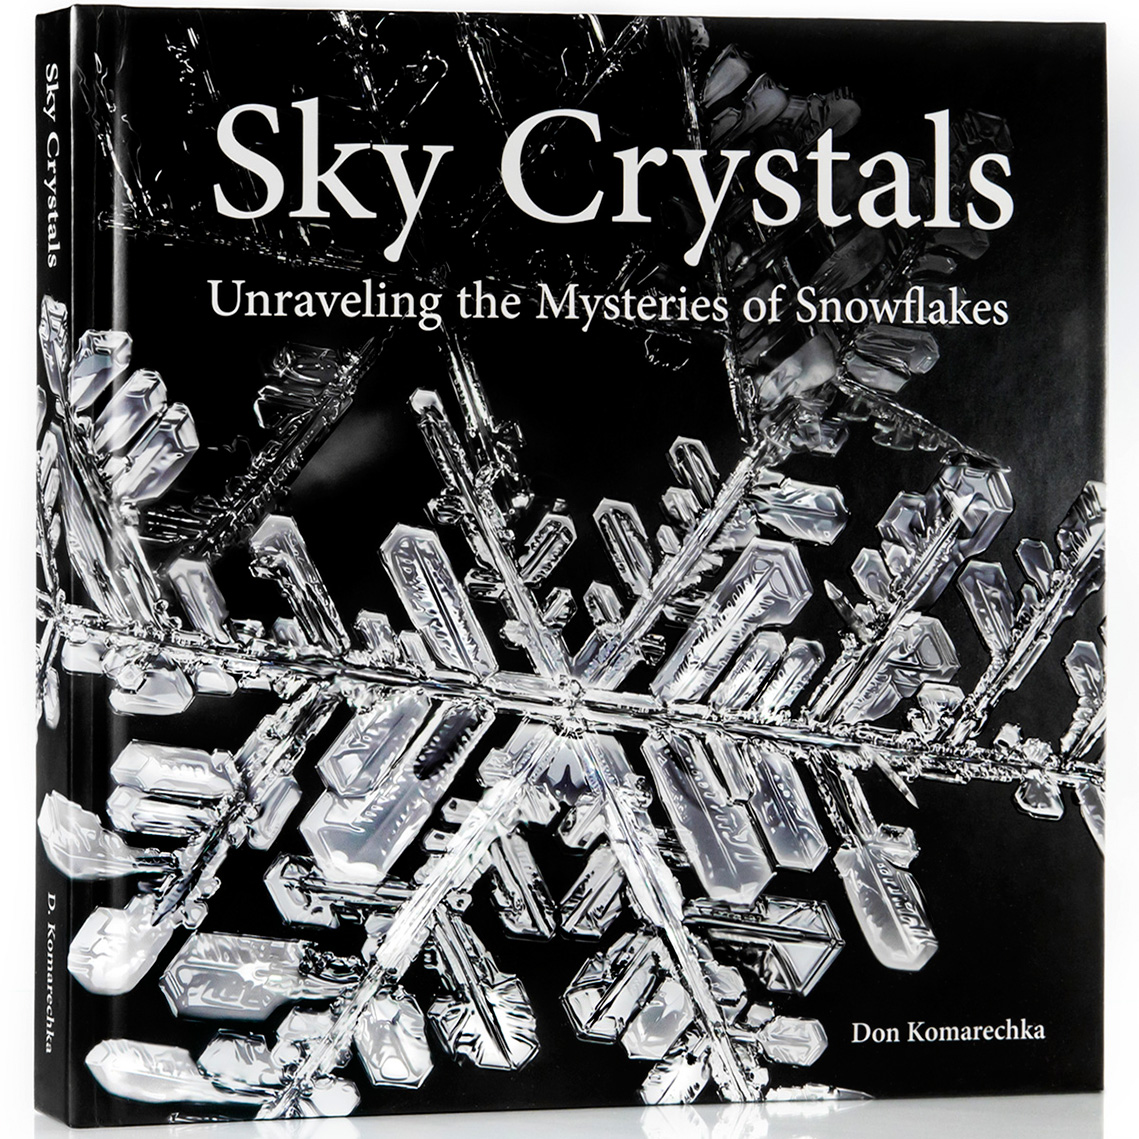 Sky Crystals book cover by Don Komarechka ©